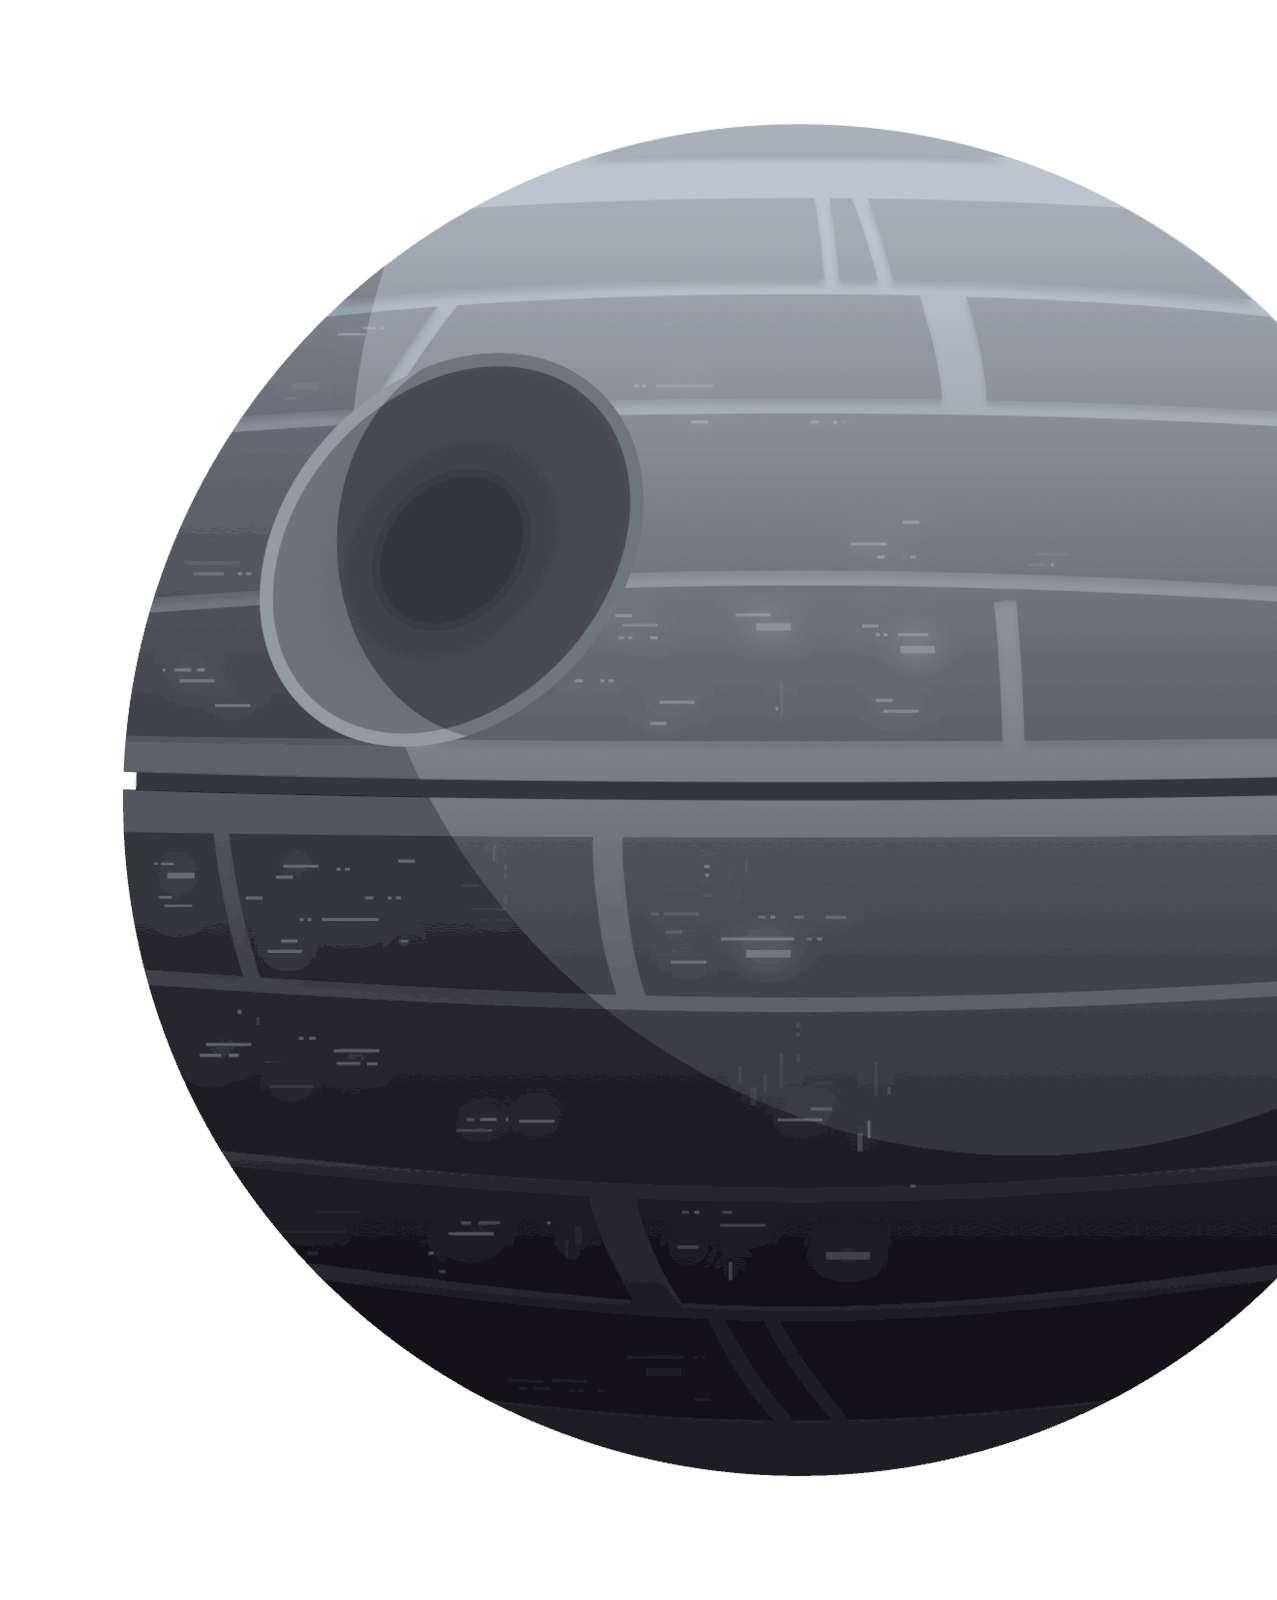 Deathstar R2D2 Swift Case Study Finger Food